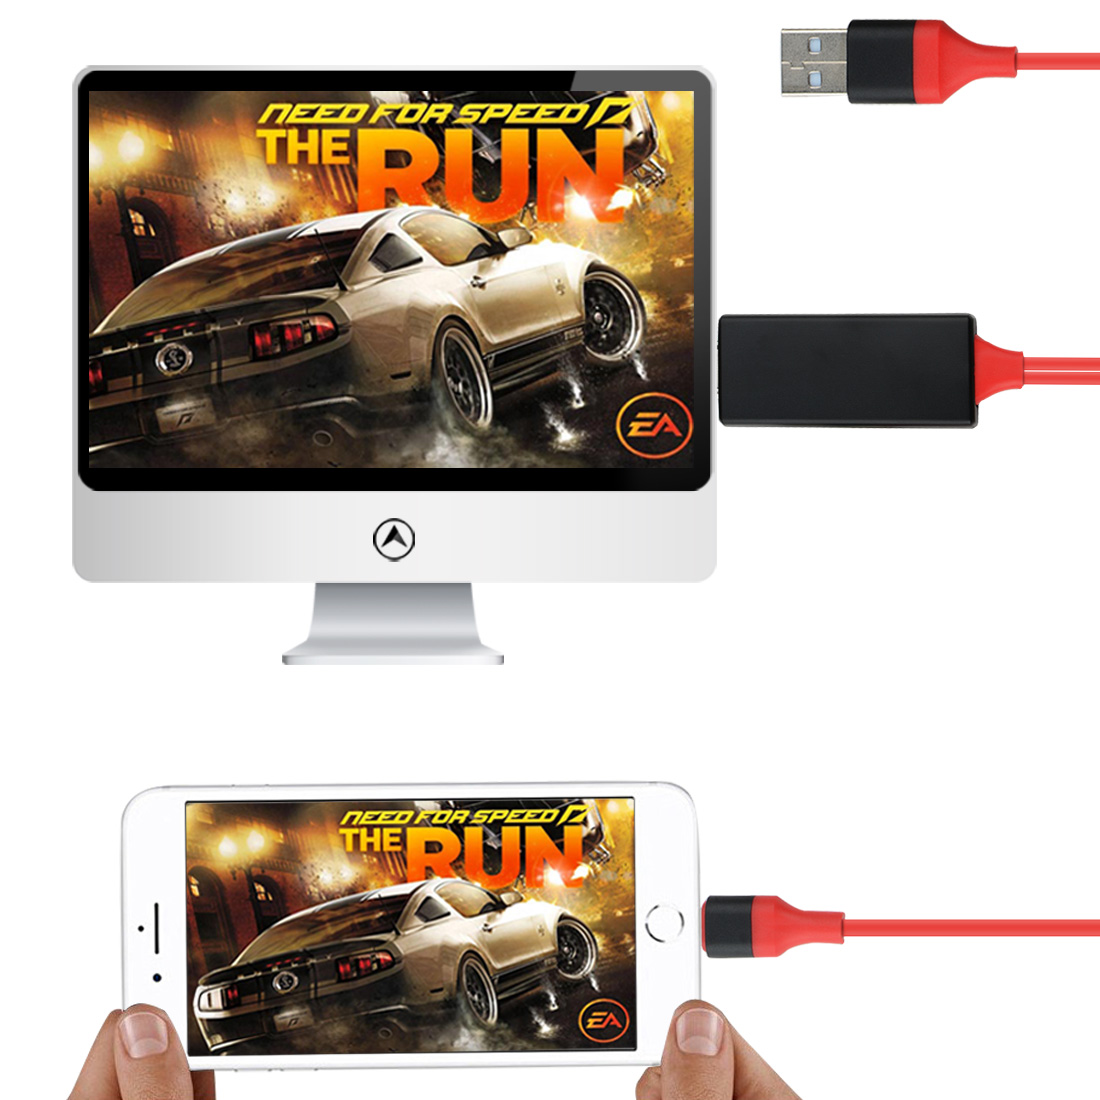 1080p Iphone Hdmi Hdtv Av Cable Adapter For Ios 10 11 Iphone X 5 Se 6s 7 8 Plus Ipad Air 2 Pro Mini Ipod For Iphone